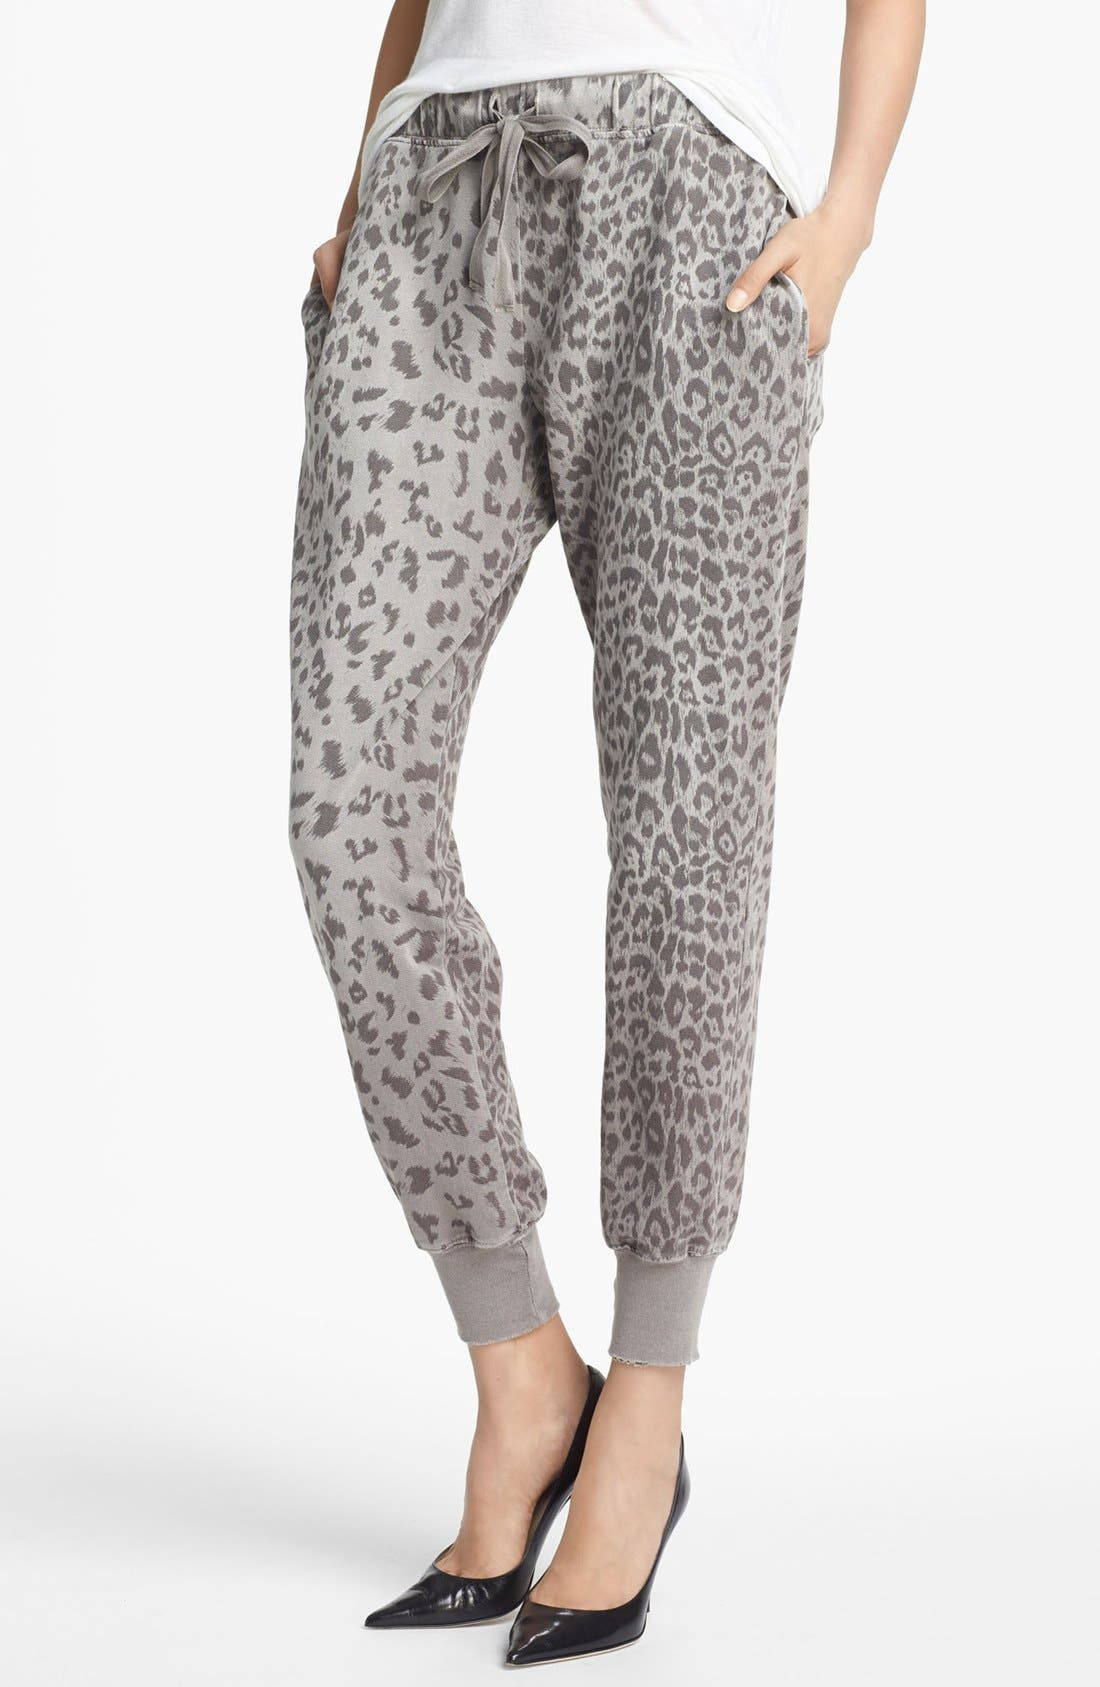 CURRENT/ELLIOTT,                             Animal Print Sweatpants,                             Main thumbnail 1, color,                             093